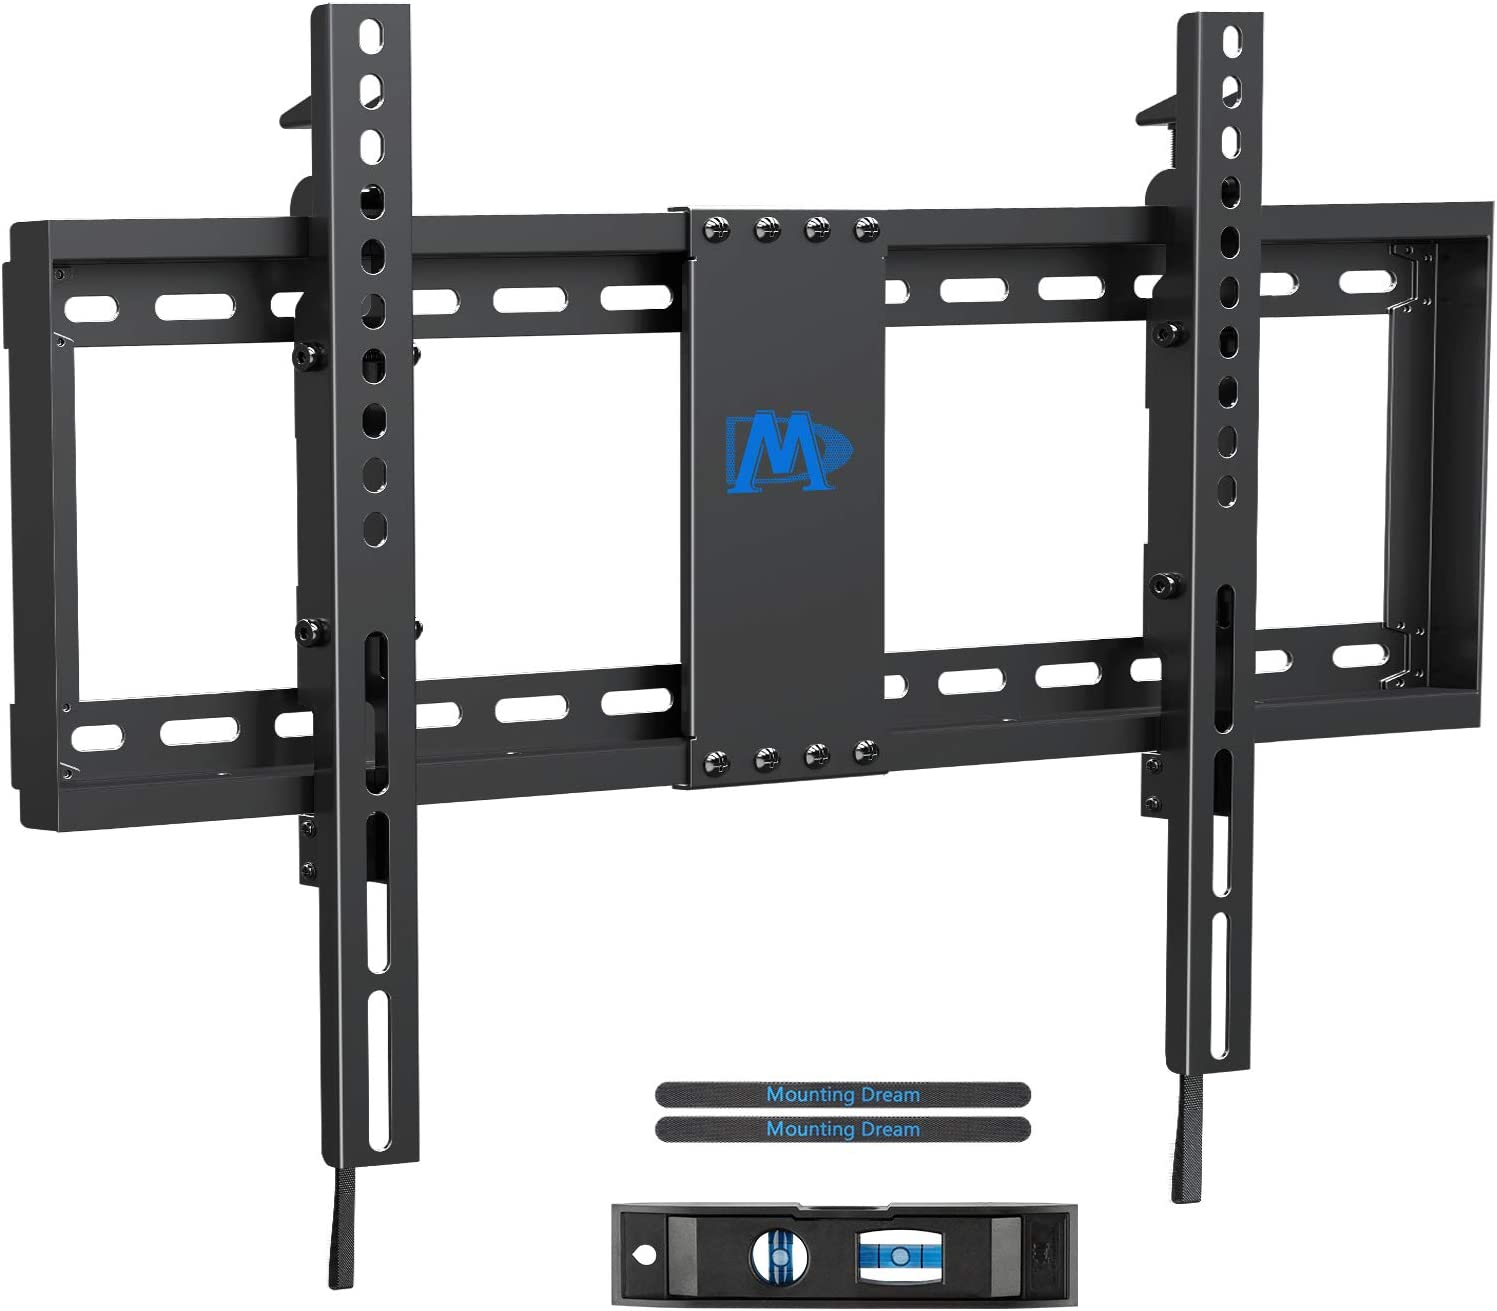 "Mounting Dream TV Wall Mount TV Bracket with Leveling Design for 37-70 inch TVs, Fixed TV Mount with Max VESA 600x400mm Weight up to 132 LBS, Low Profile TV Wall Mounts Fit 16"", 18"", 24"" Wood Studs"